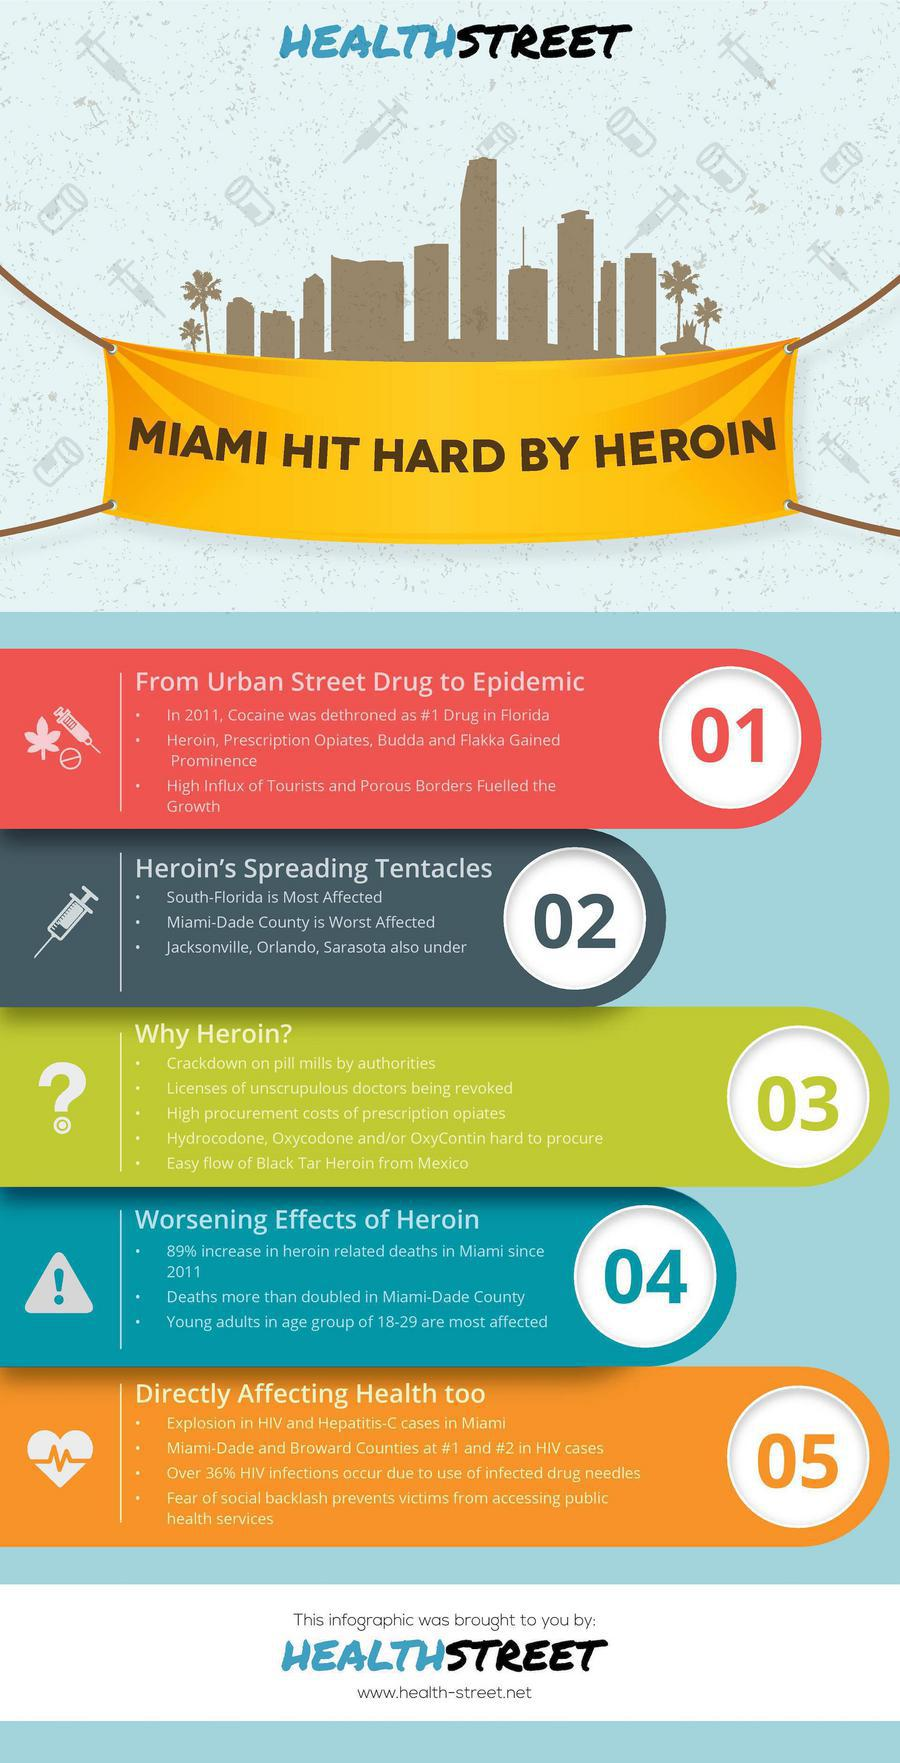 Miami Hit Hard By Heroin - infographic